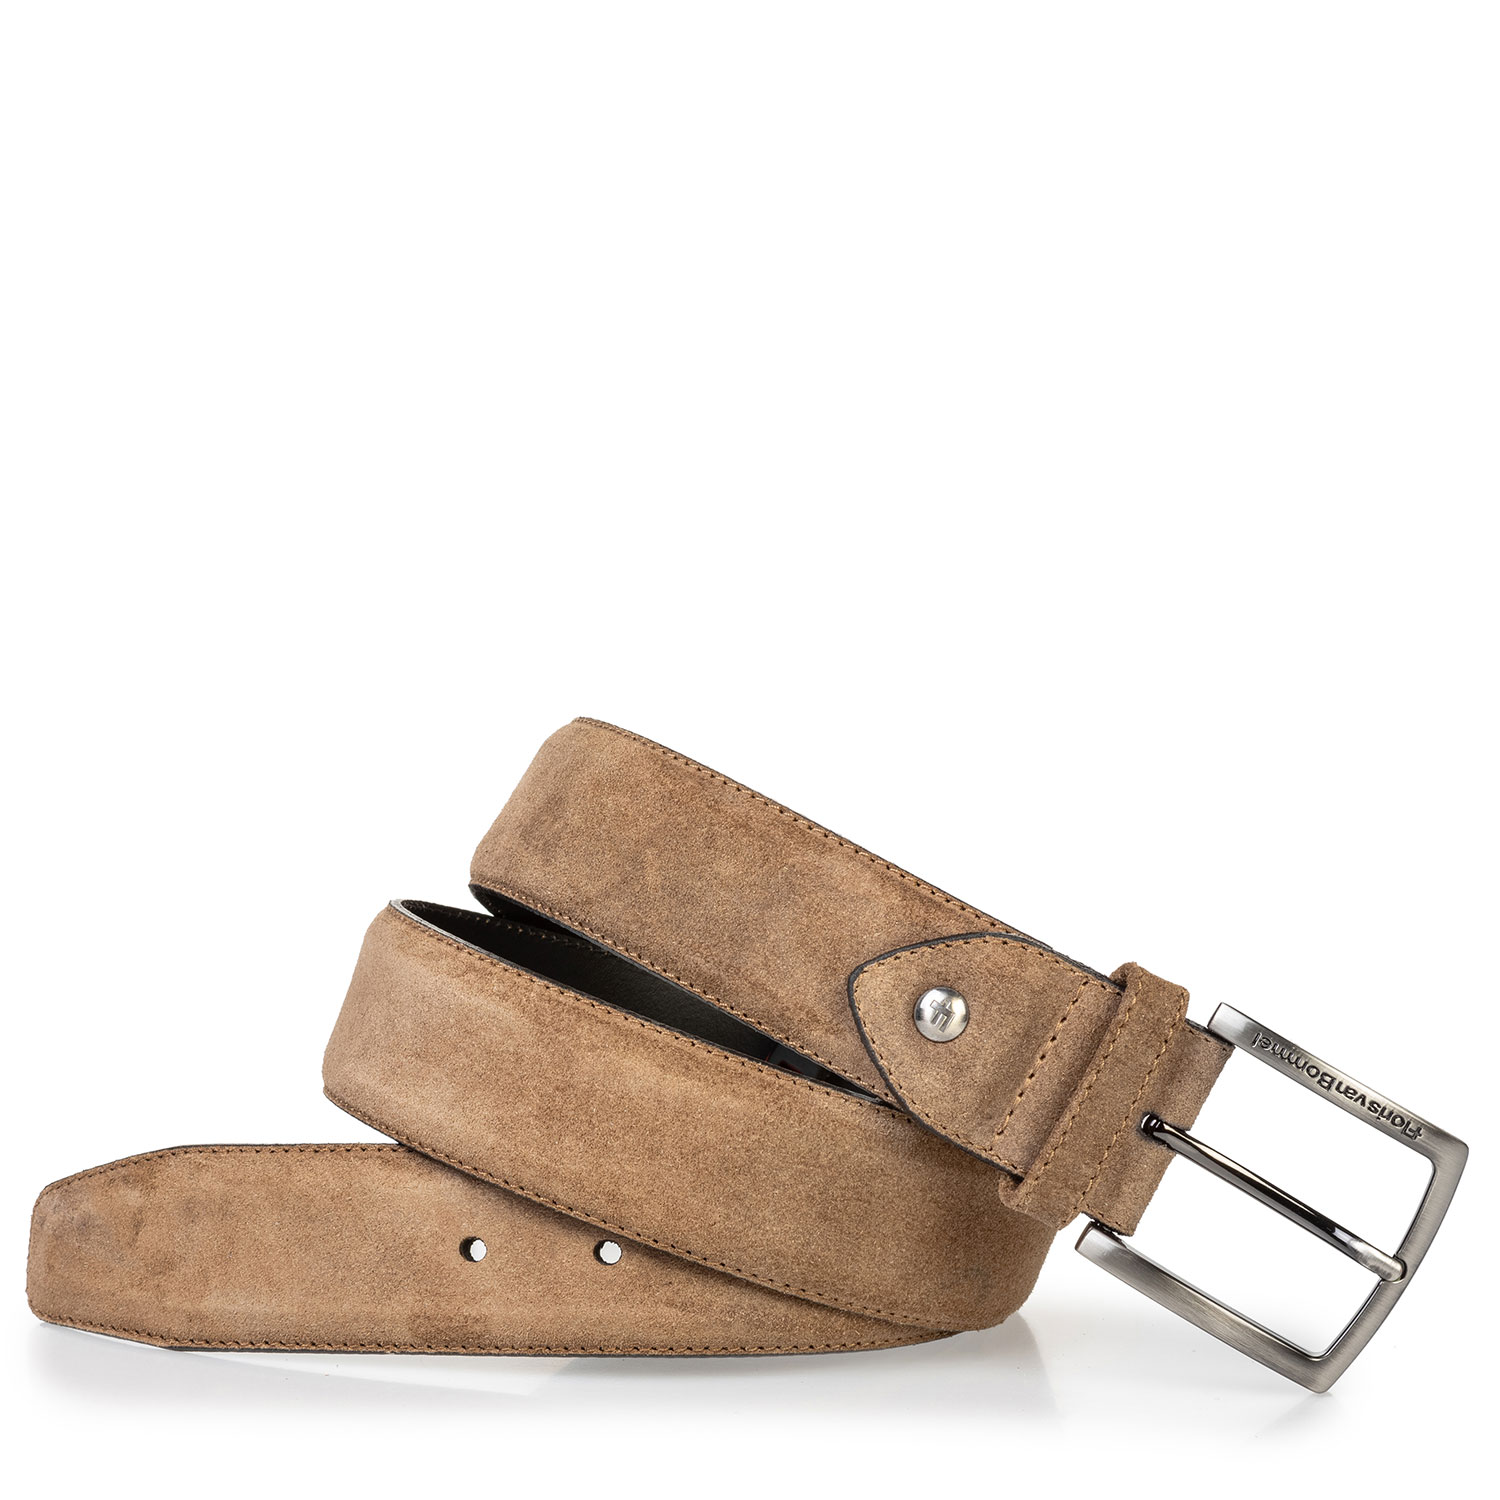 75202/99 - Suede leather belt beige